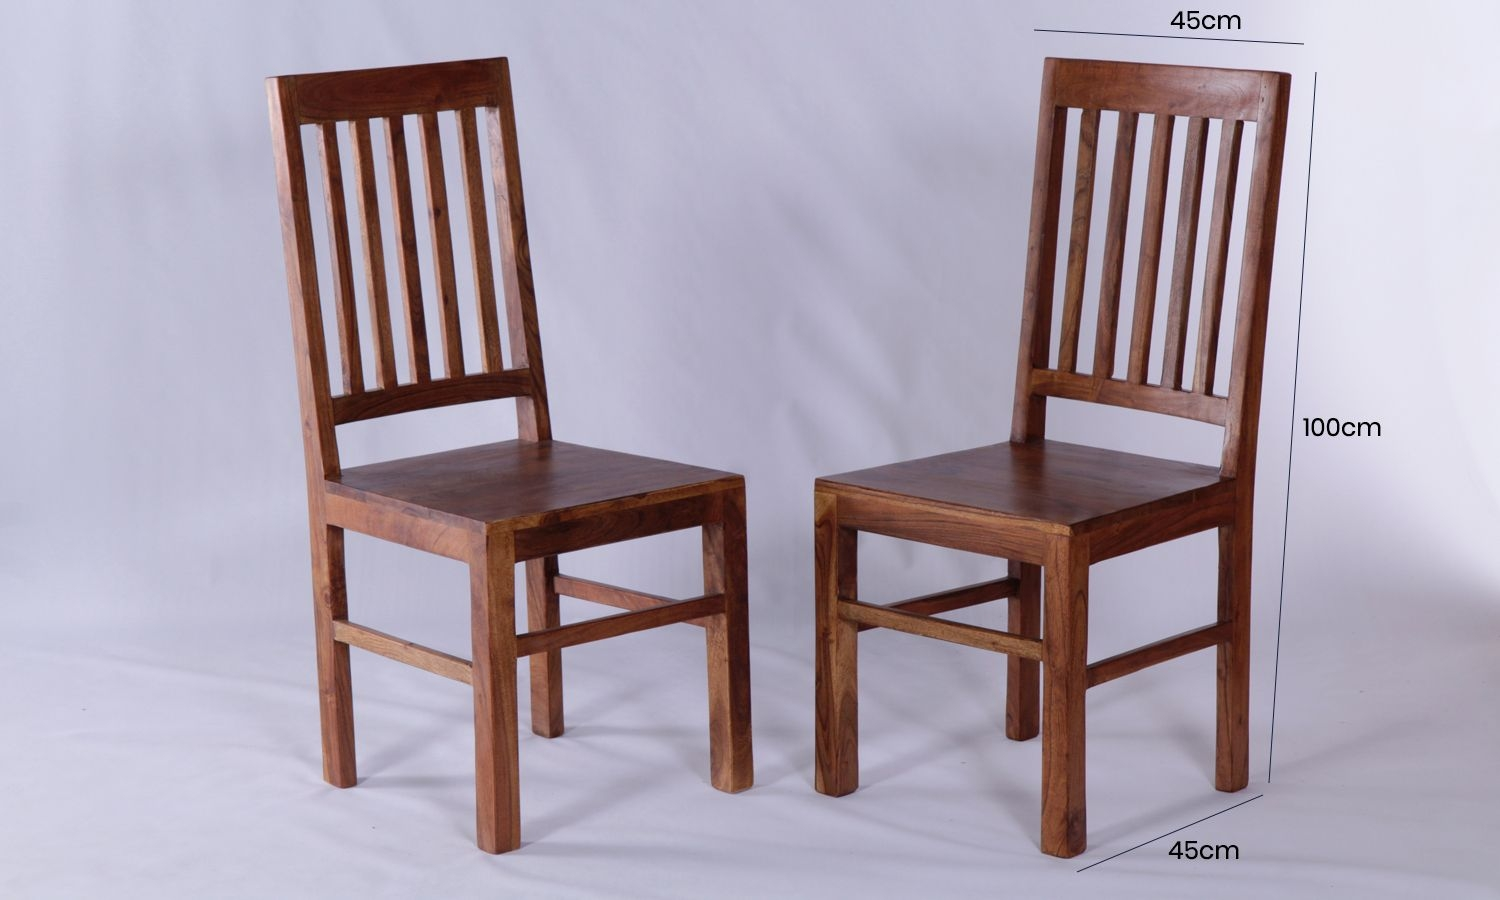 4 x Java Acacia Slatted Dining Chair